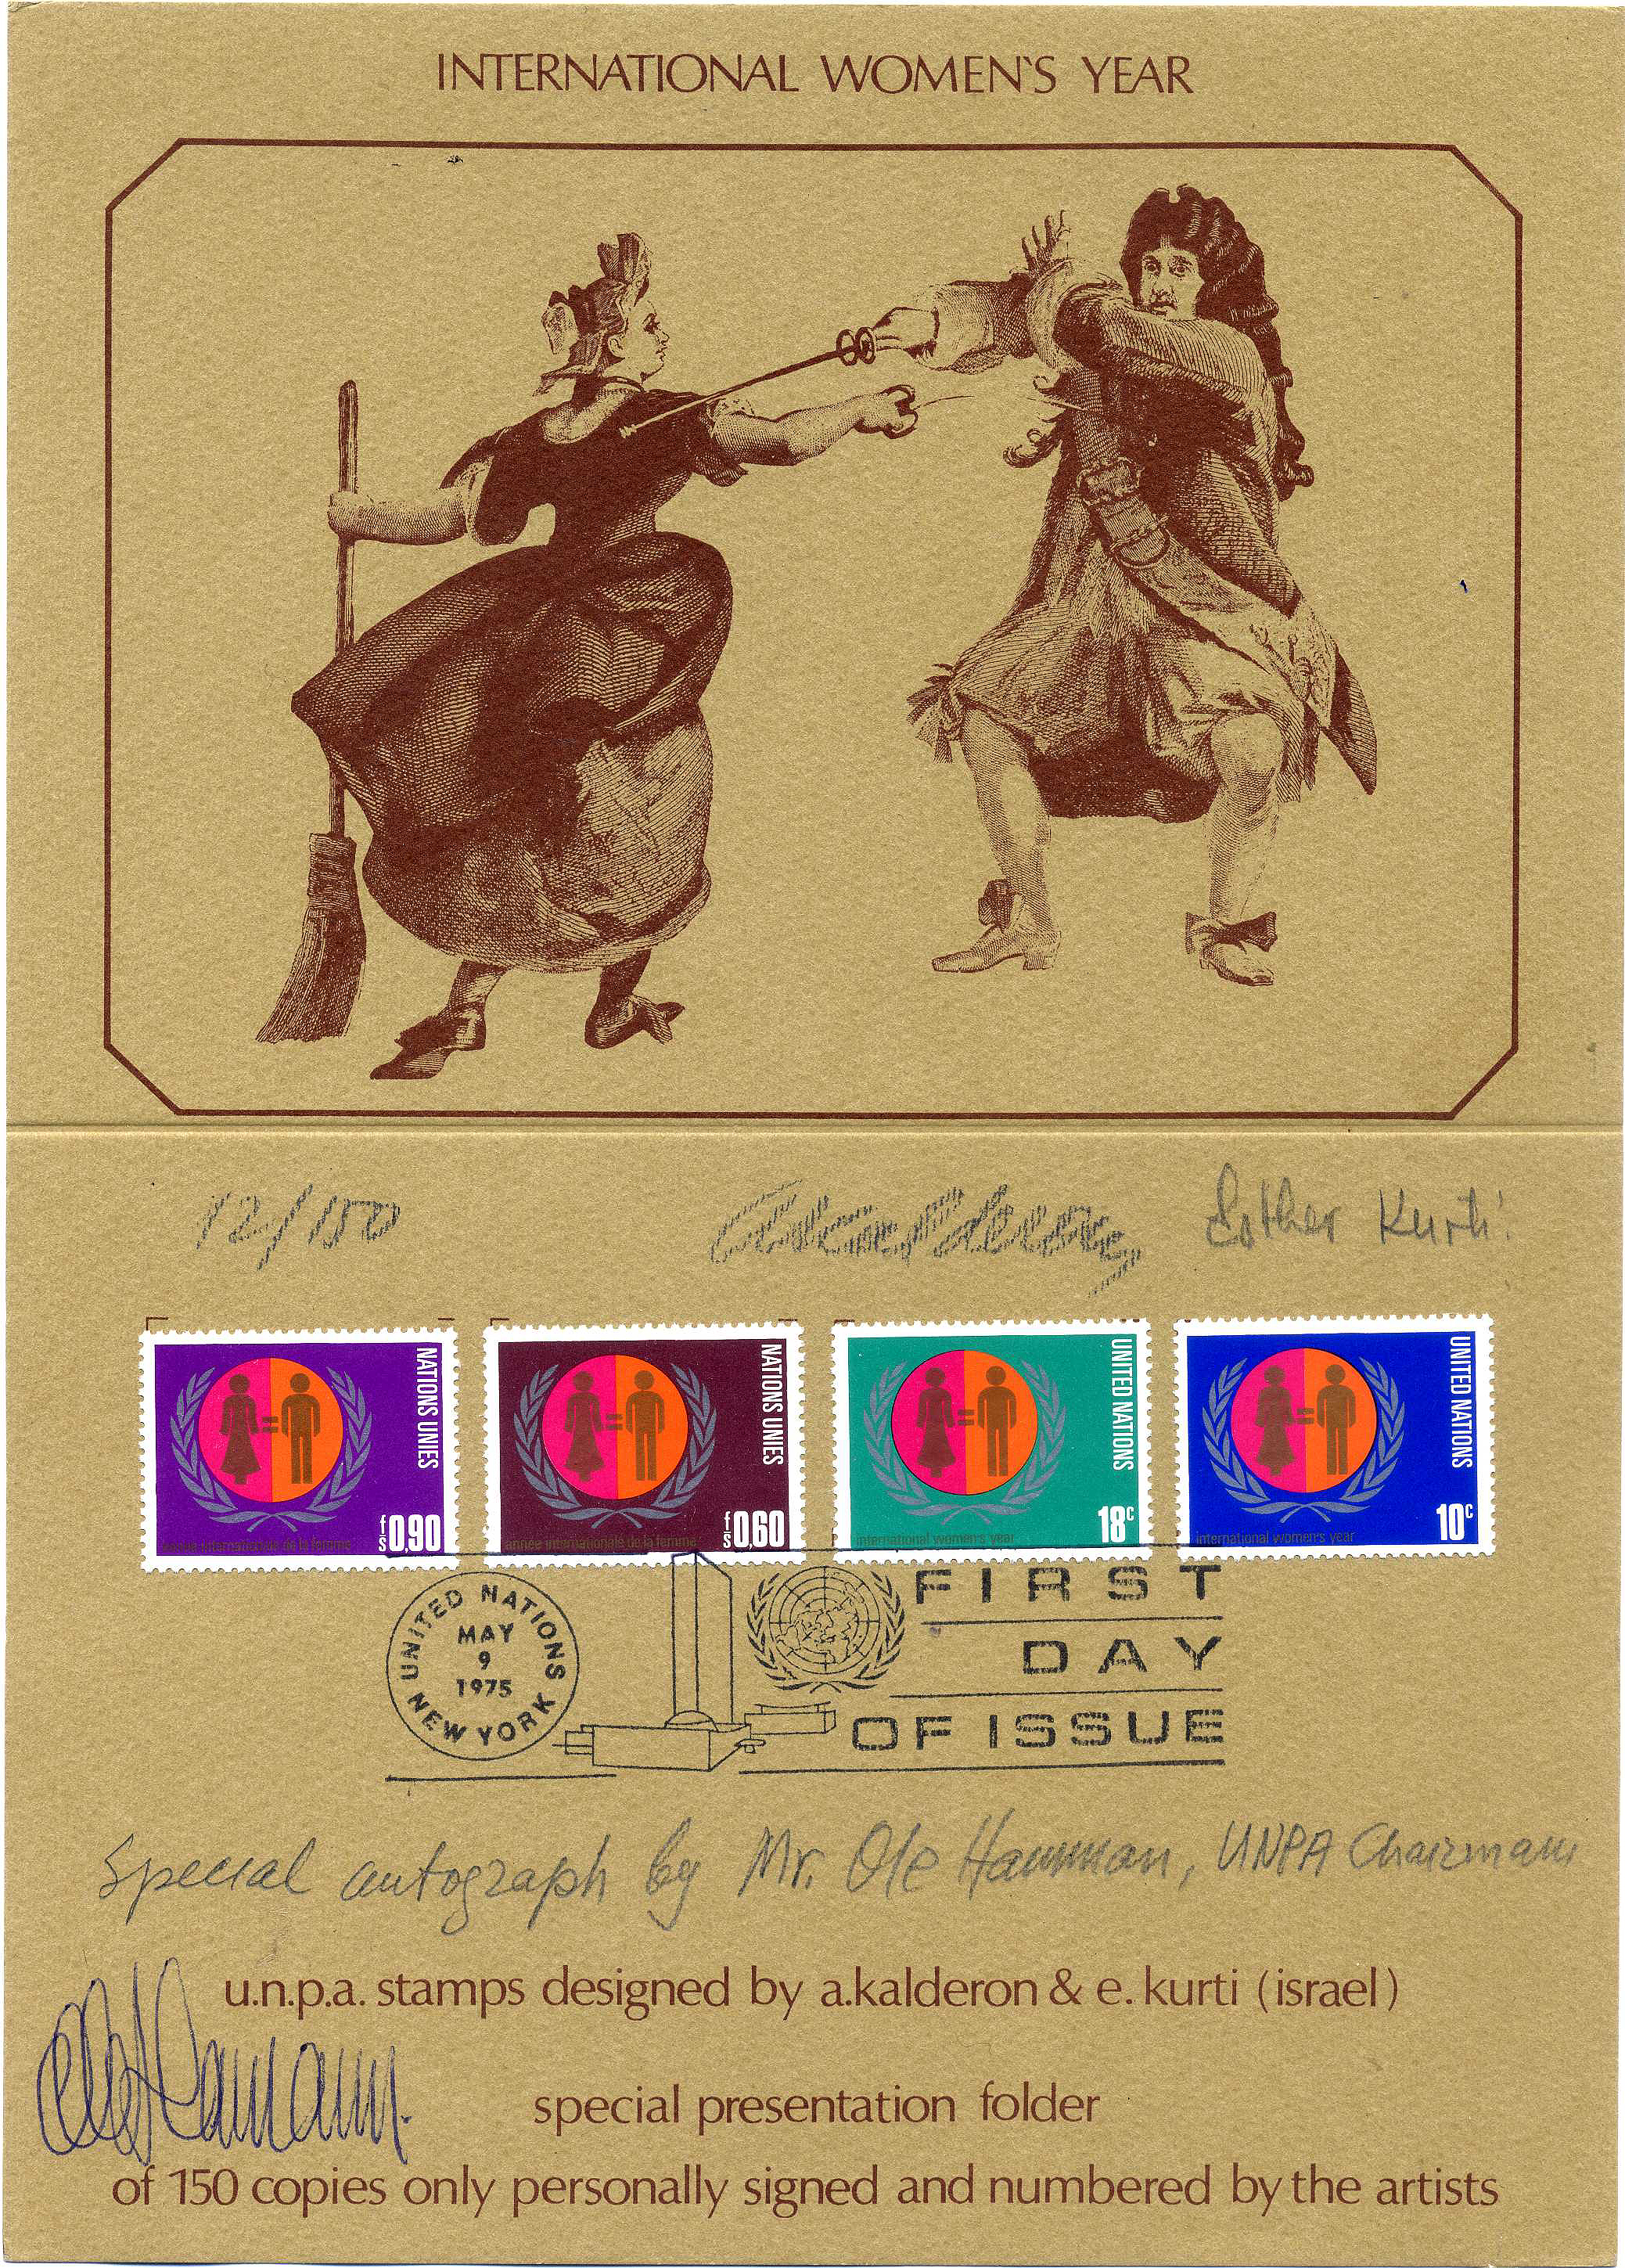 UN stamps_Women Righgts_114#D33E.jpg